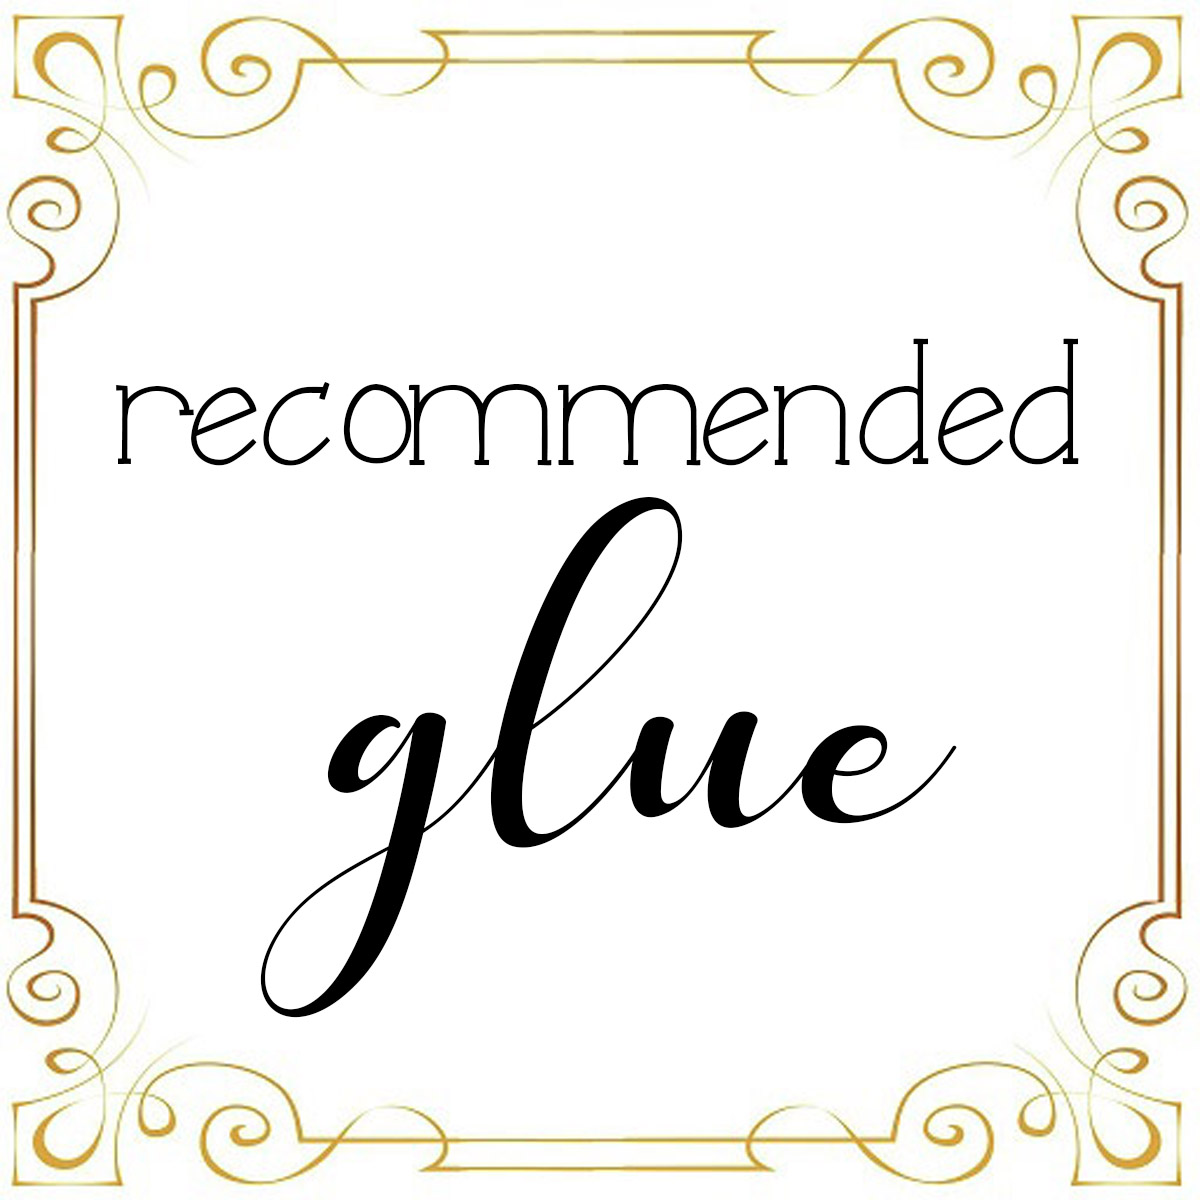 recommended glue